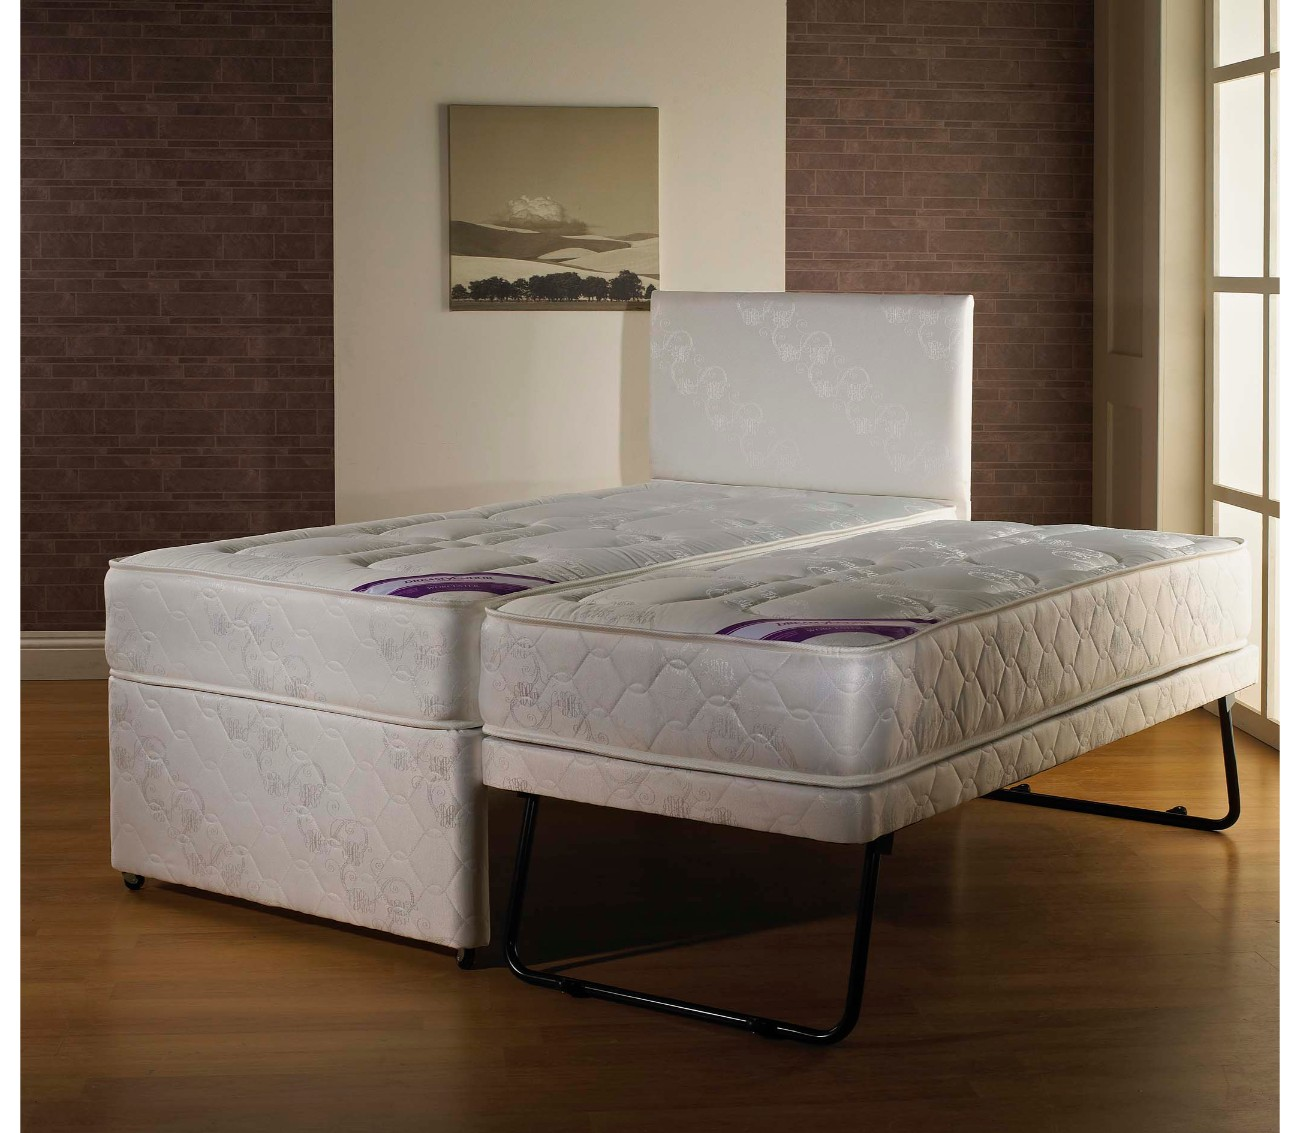 thumb_dvr_d_worcester_guest_bed_01